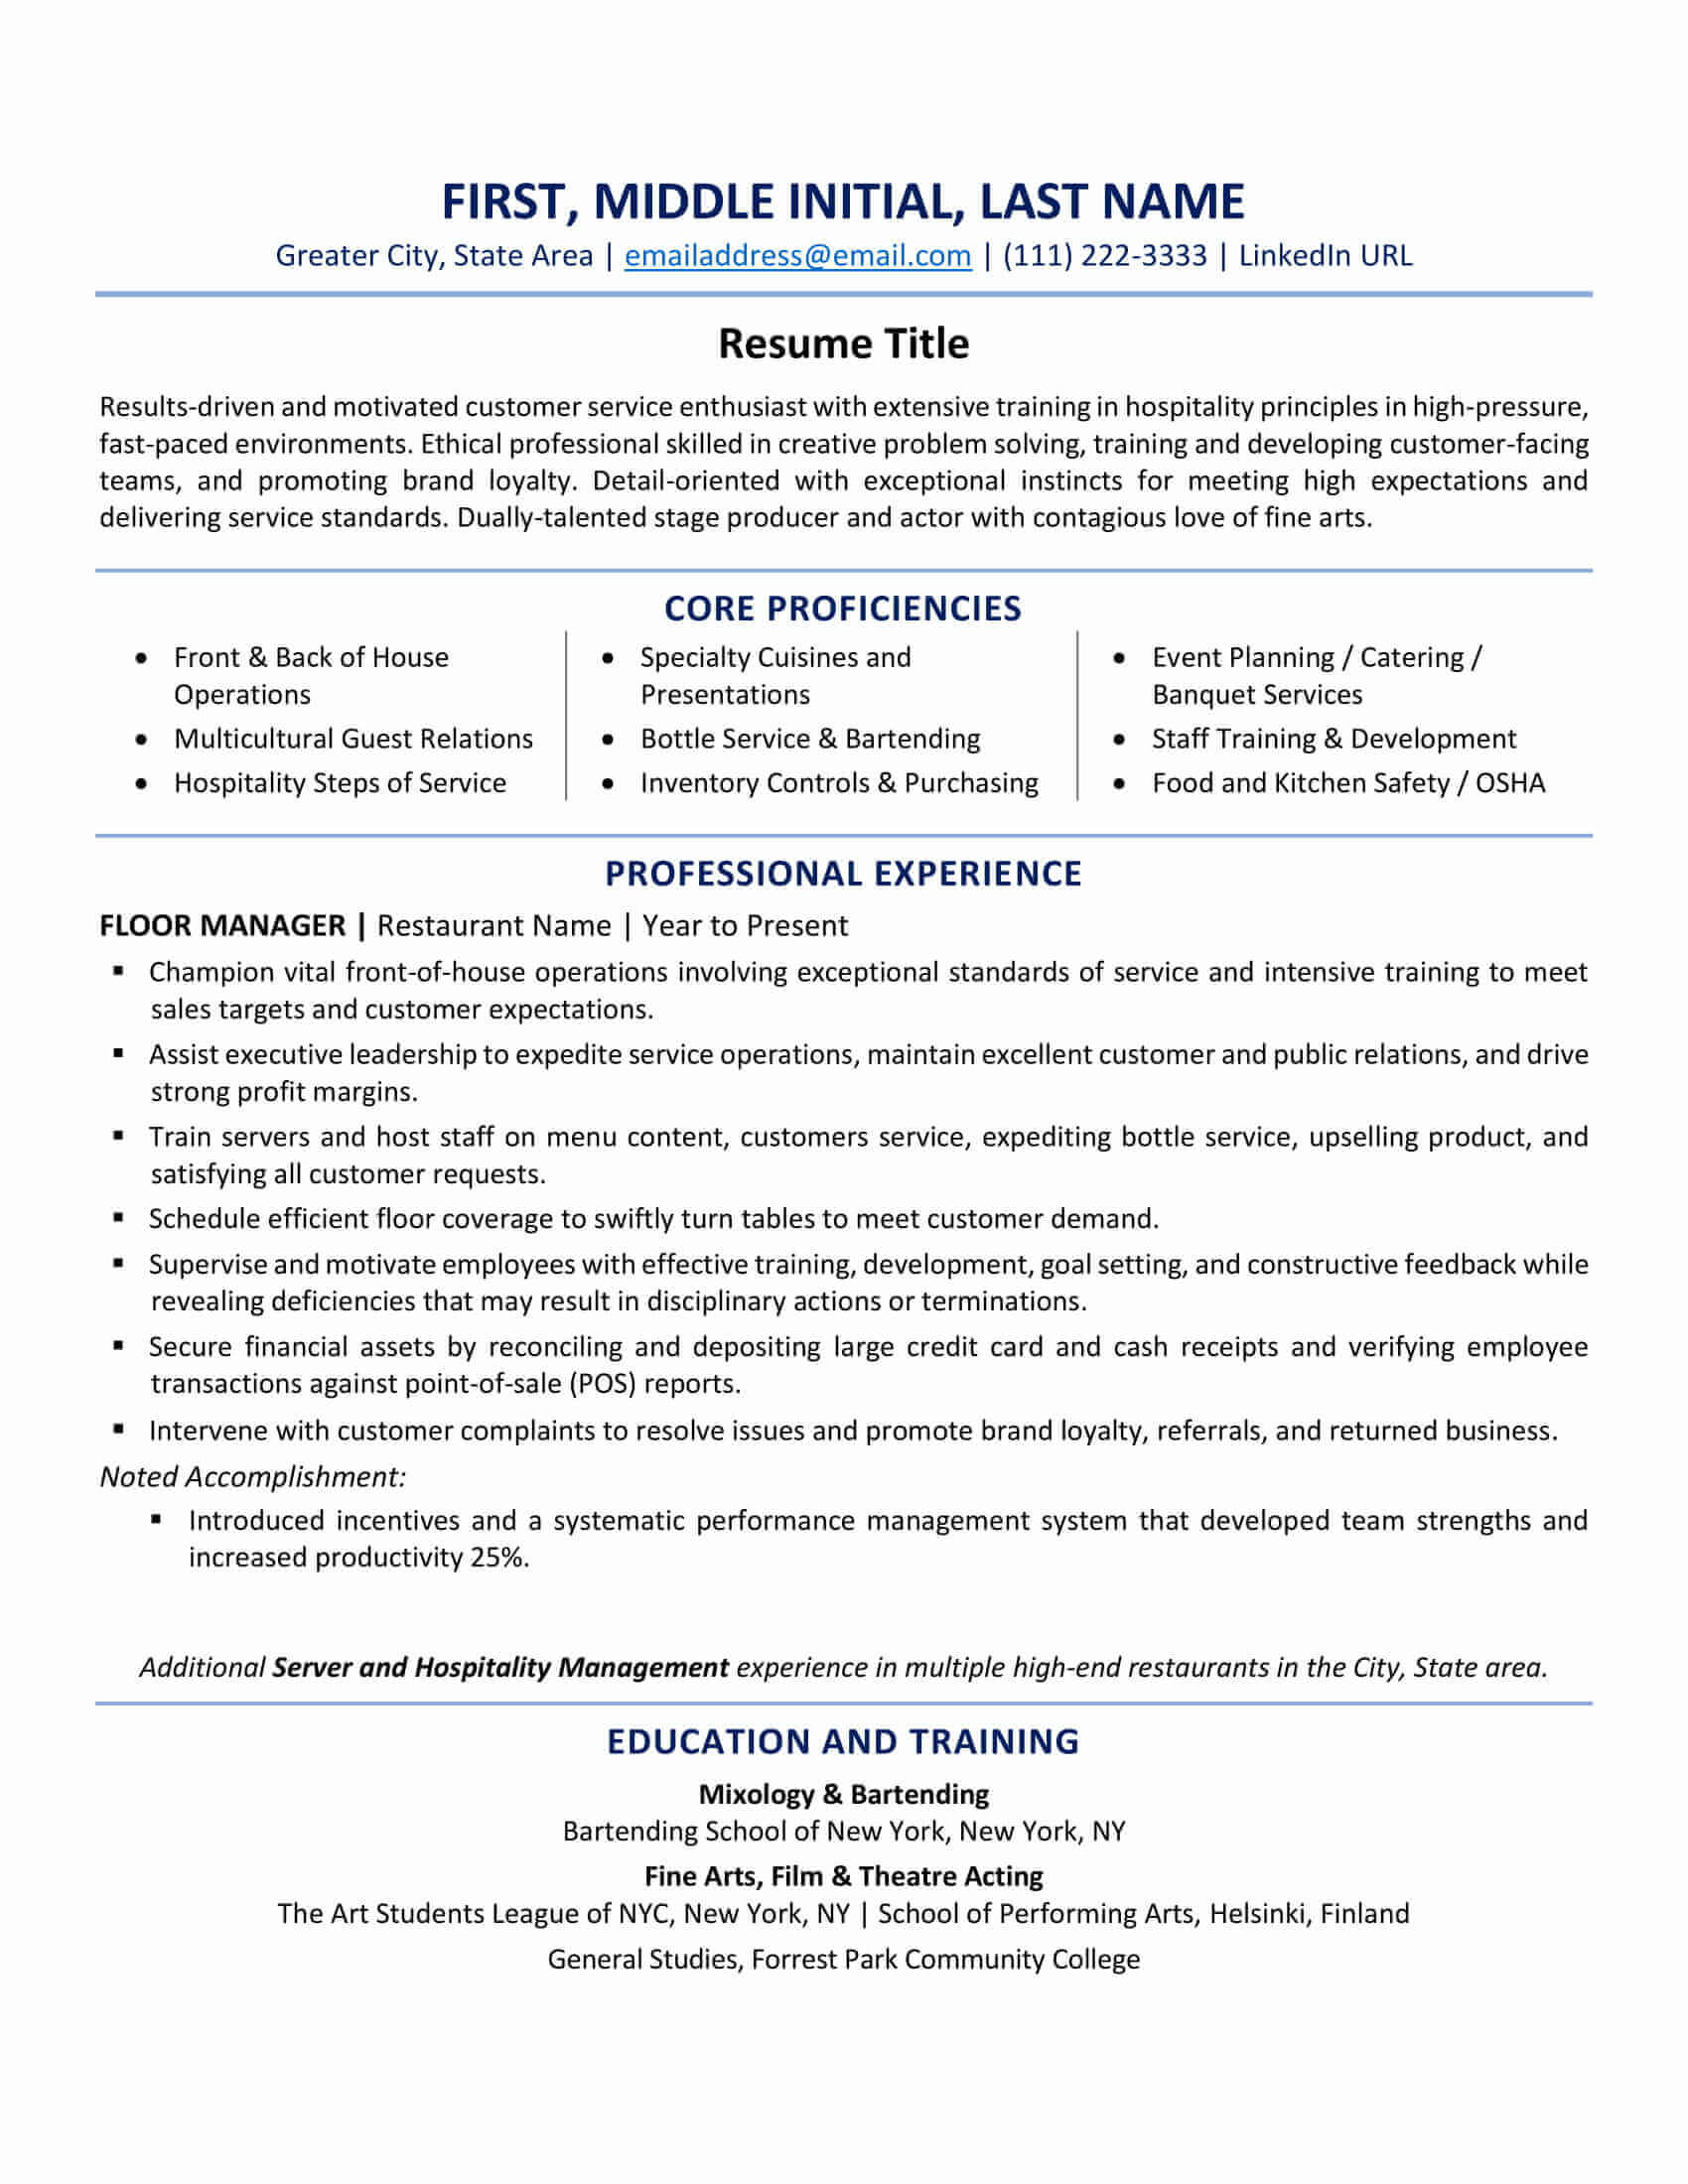 ats resume test free checker formatting examples compatible formats when moving to the us Resume Ats Compatible Resume Formats